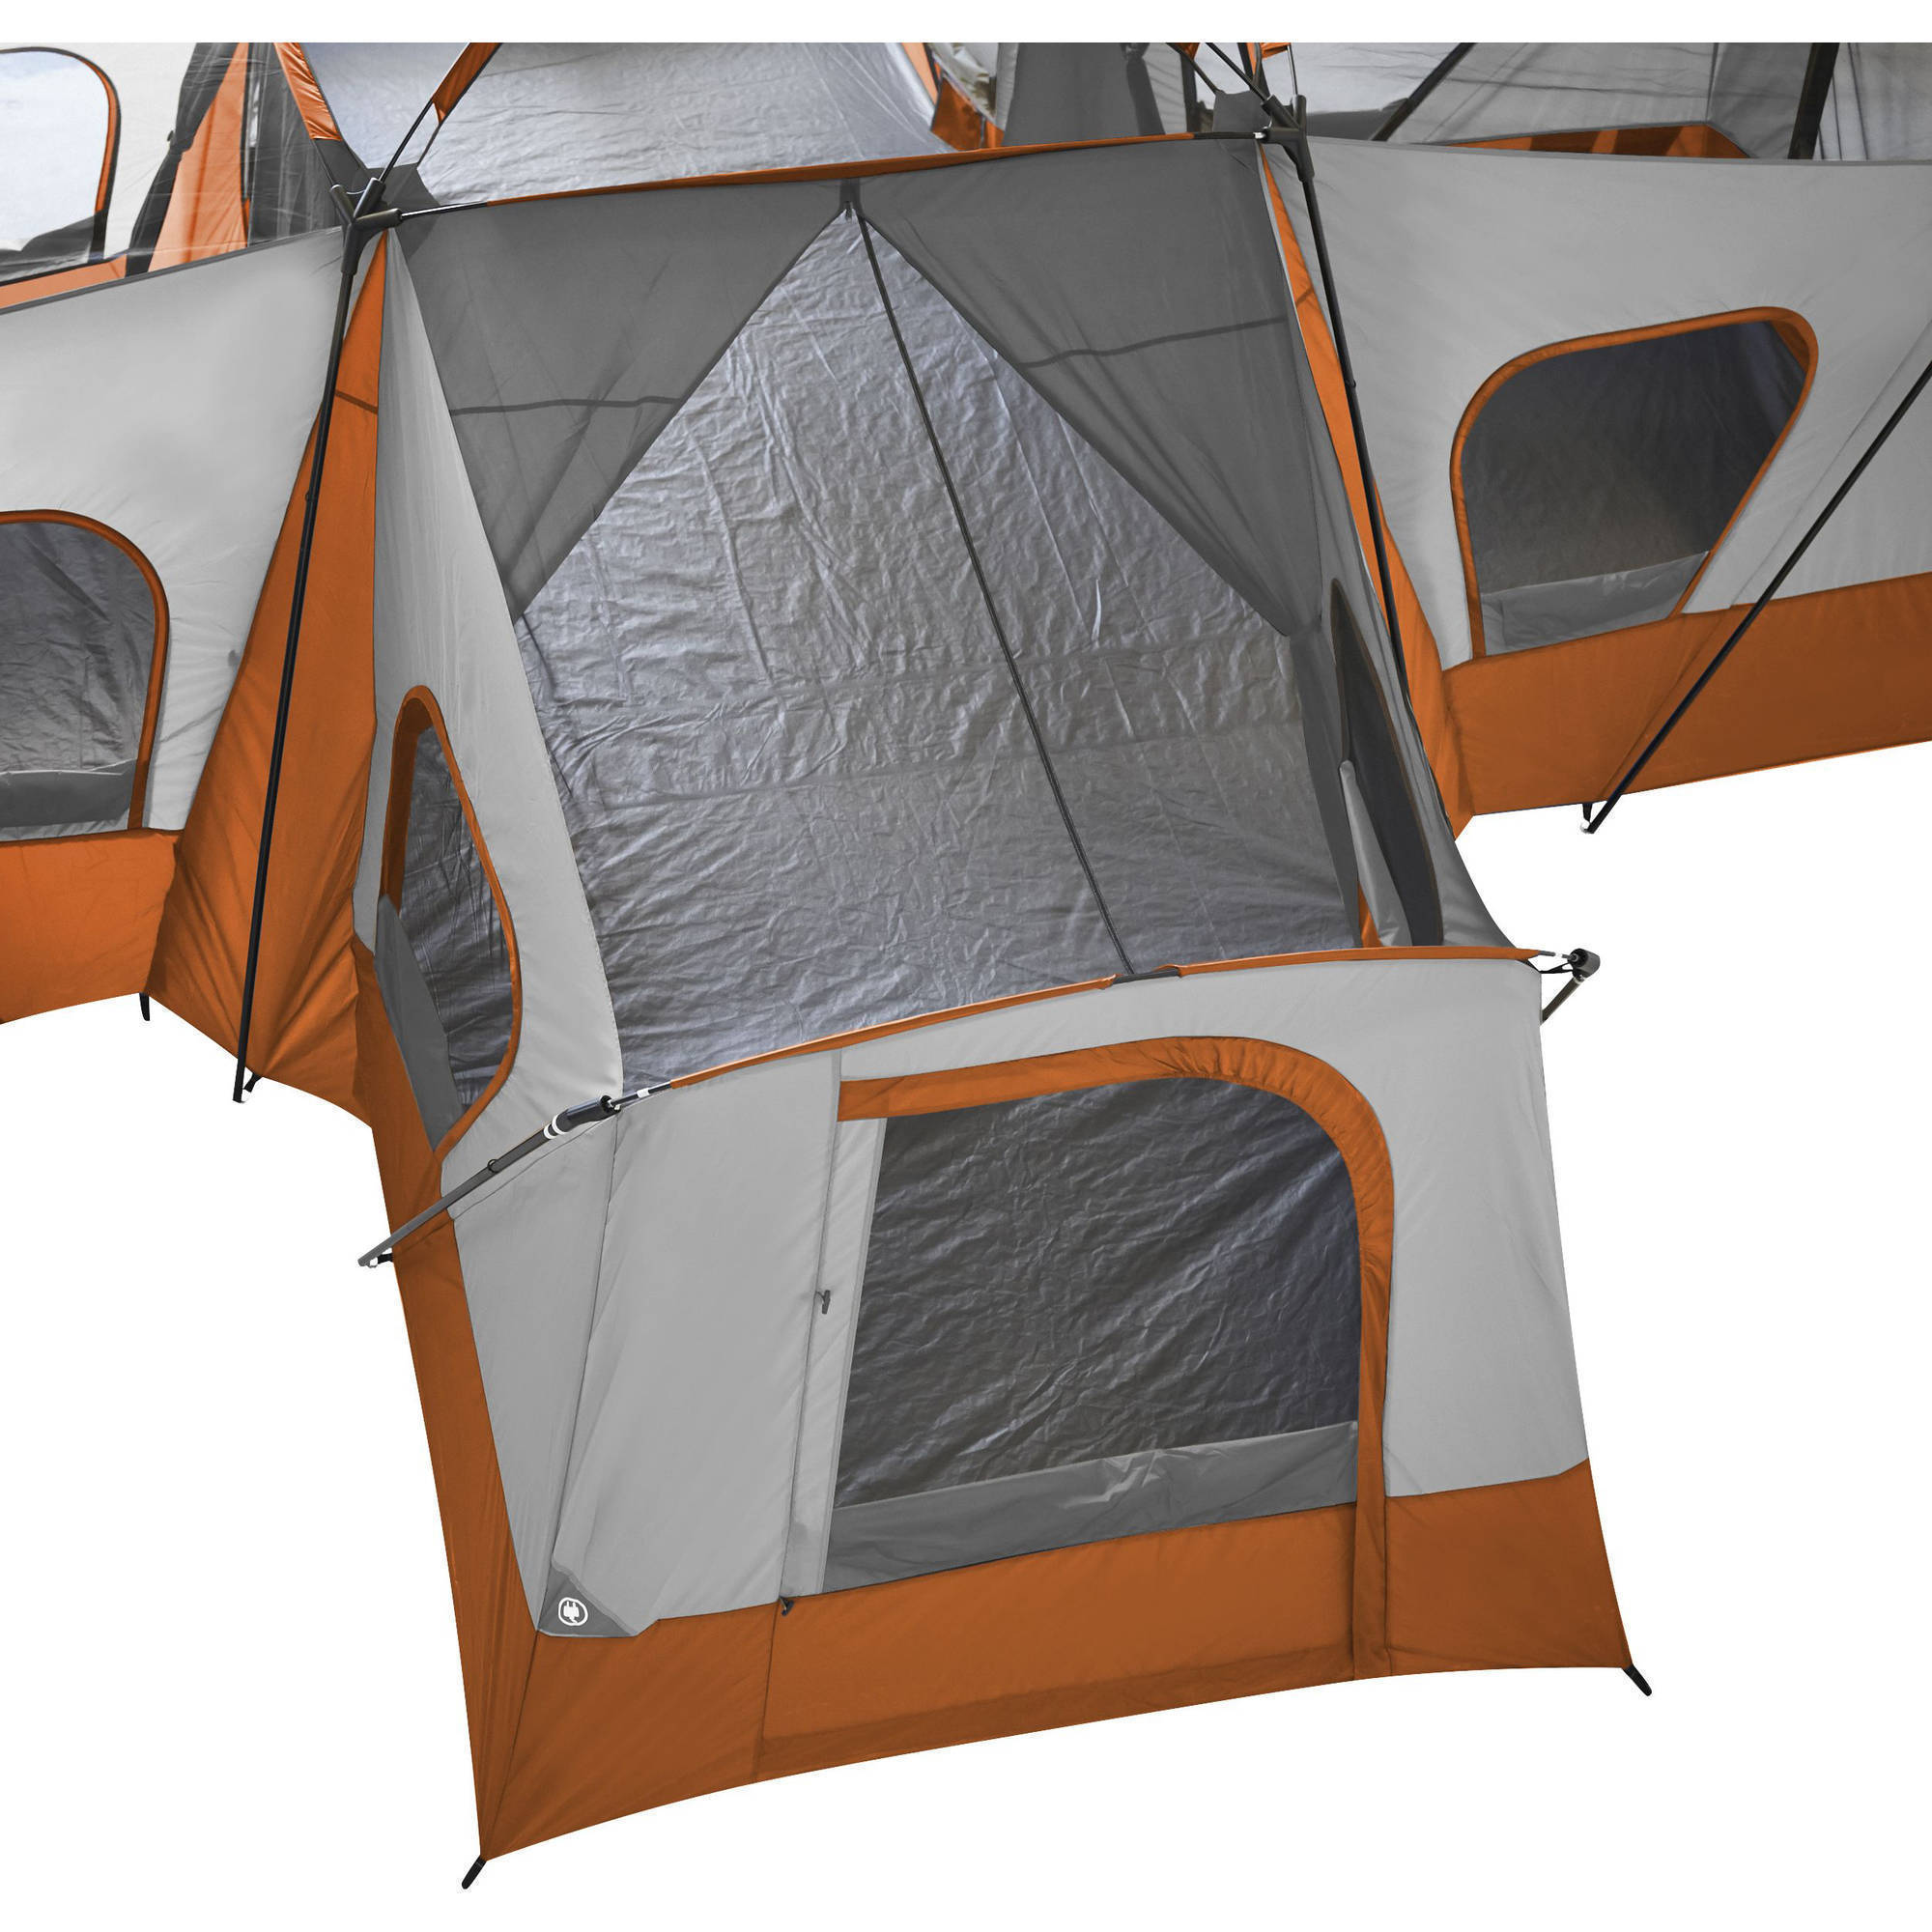 Ozark Trail 14-Person 4-Room Base C& Tent Image 6 of 9  sc 1 st  Walmart & Ozark Trail 14-Person 4-Room Base Camp Tent - Walmart.com